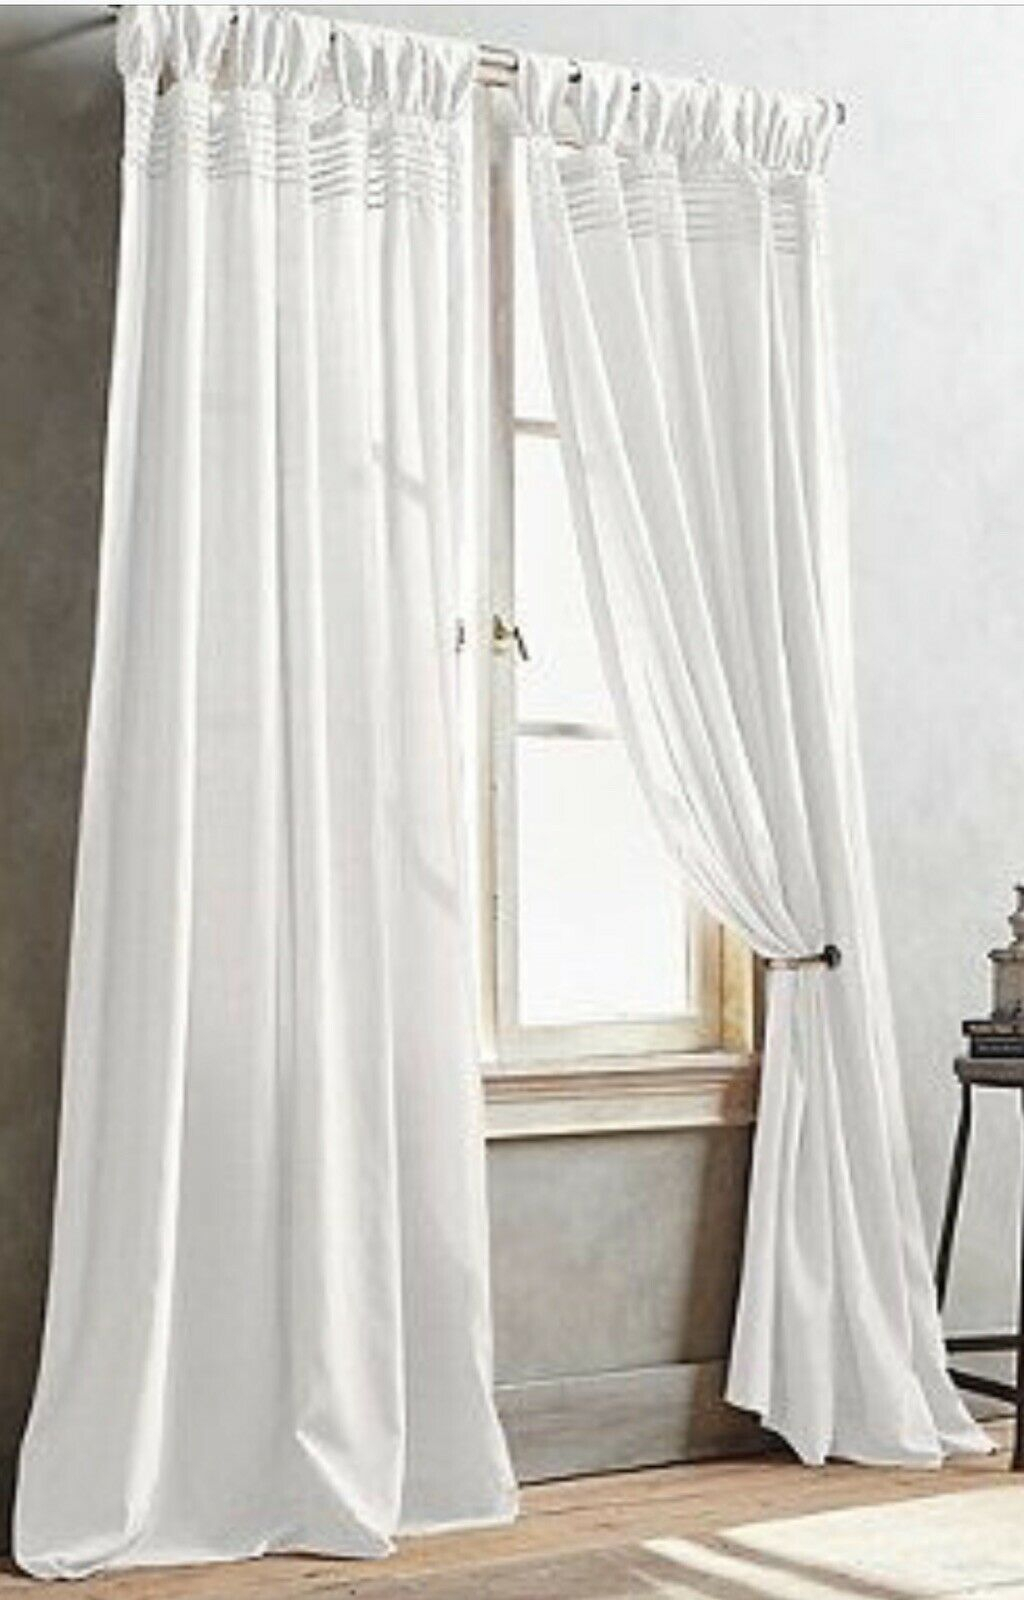 "3 New Dkny City Edition Cream Window Curtain Tab Top Pleated Panels 50 X 95"" Throughout Vue Elements Priya Tab Top Window Curtains (View 13 of 30)"